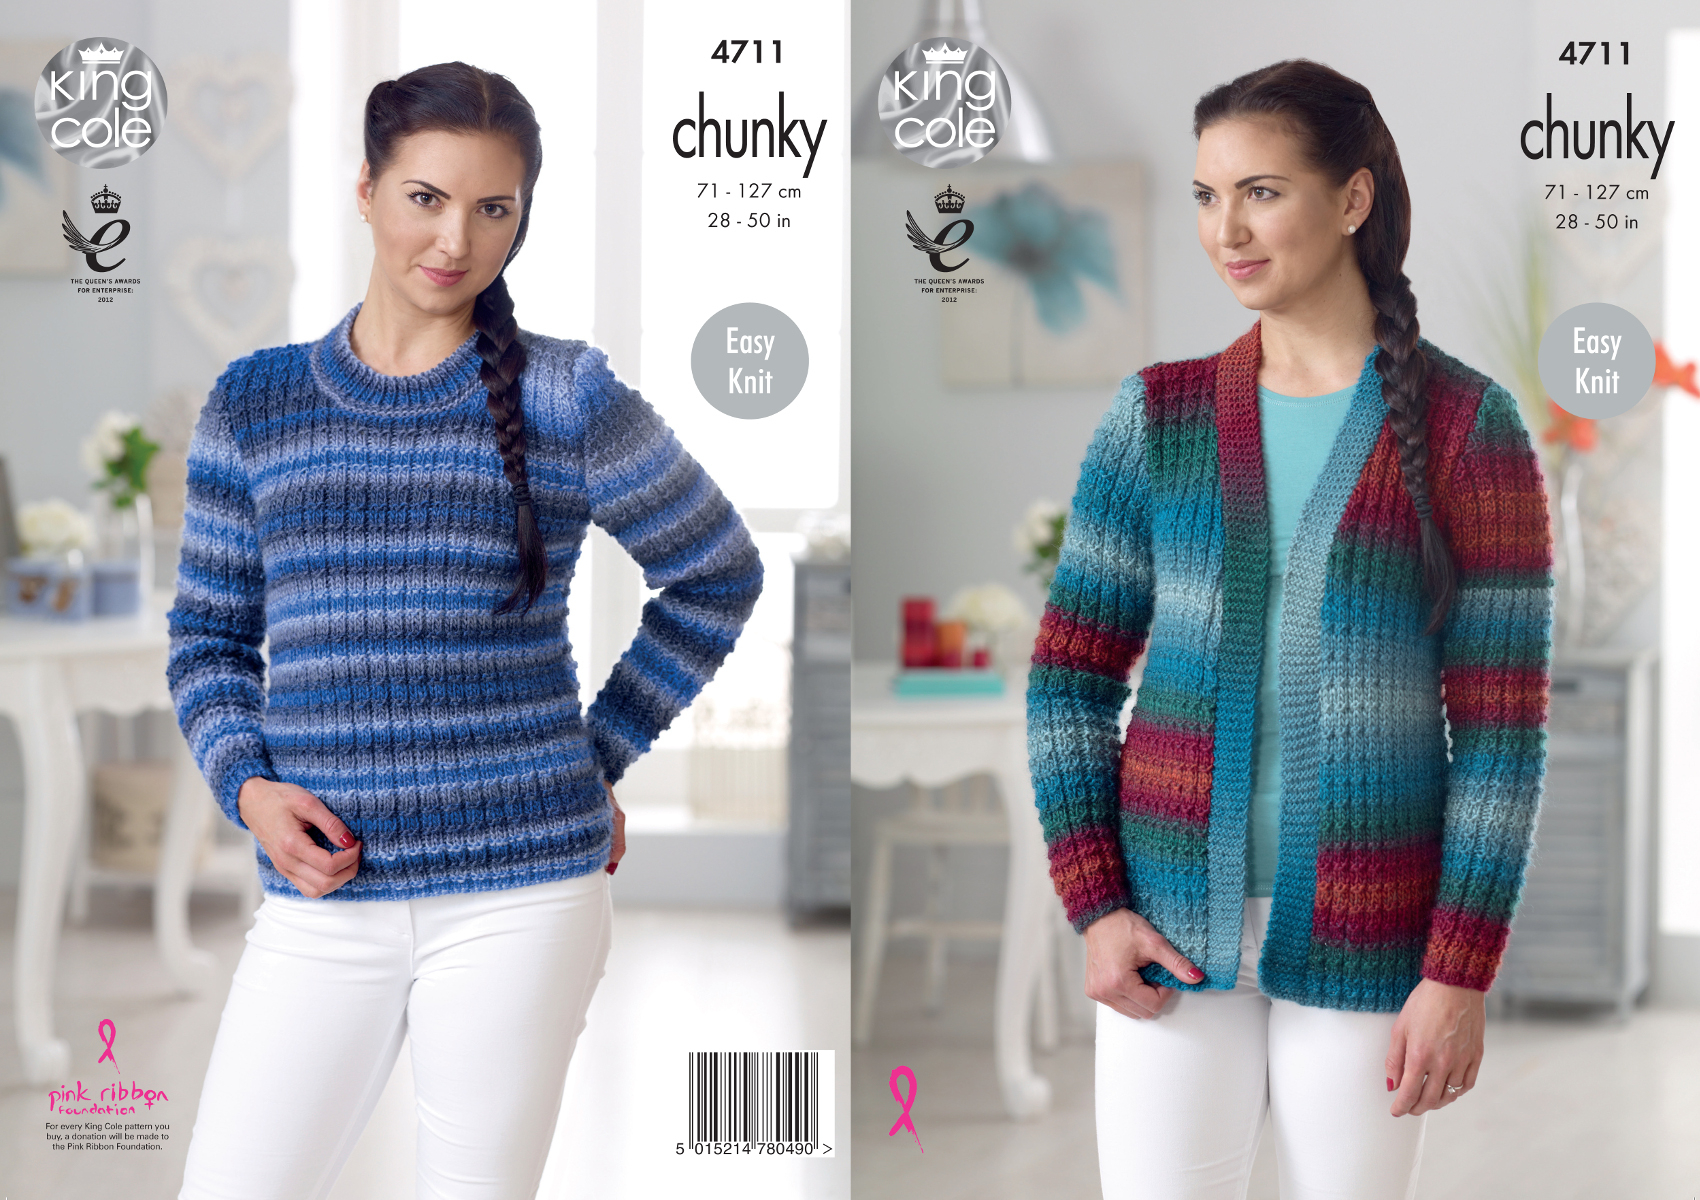 Knit Cardigan Pattern Details About King Cole Ladies Riot Chunky Knitting Pattern Easy Knit Cardigan Sweater 4711